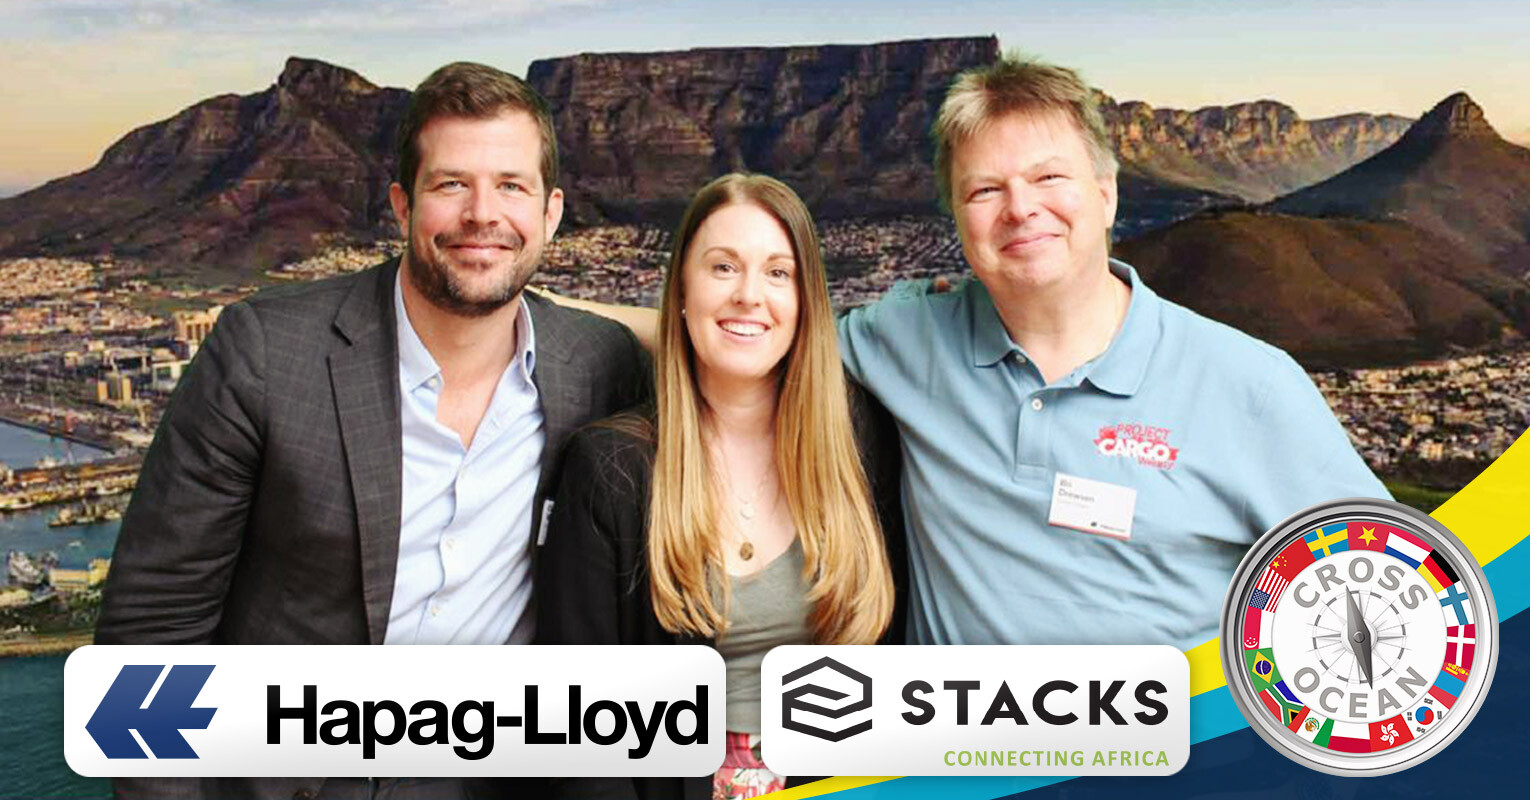 Cross Ocean and STACKS joining Hapag-Lloyd's event in Cape Town, South Africa